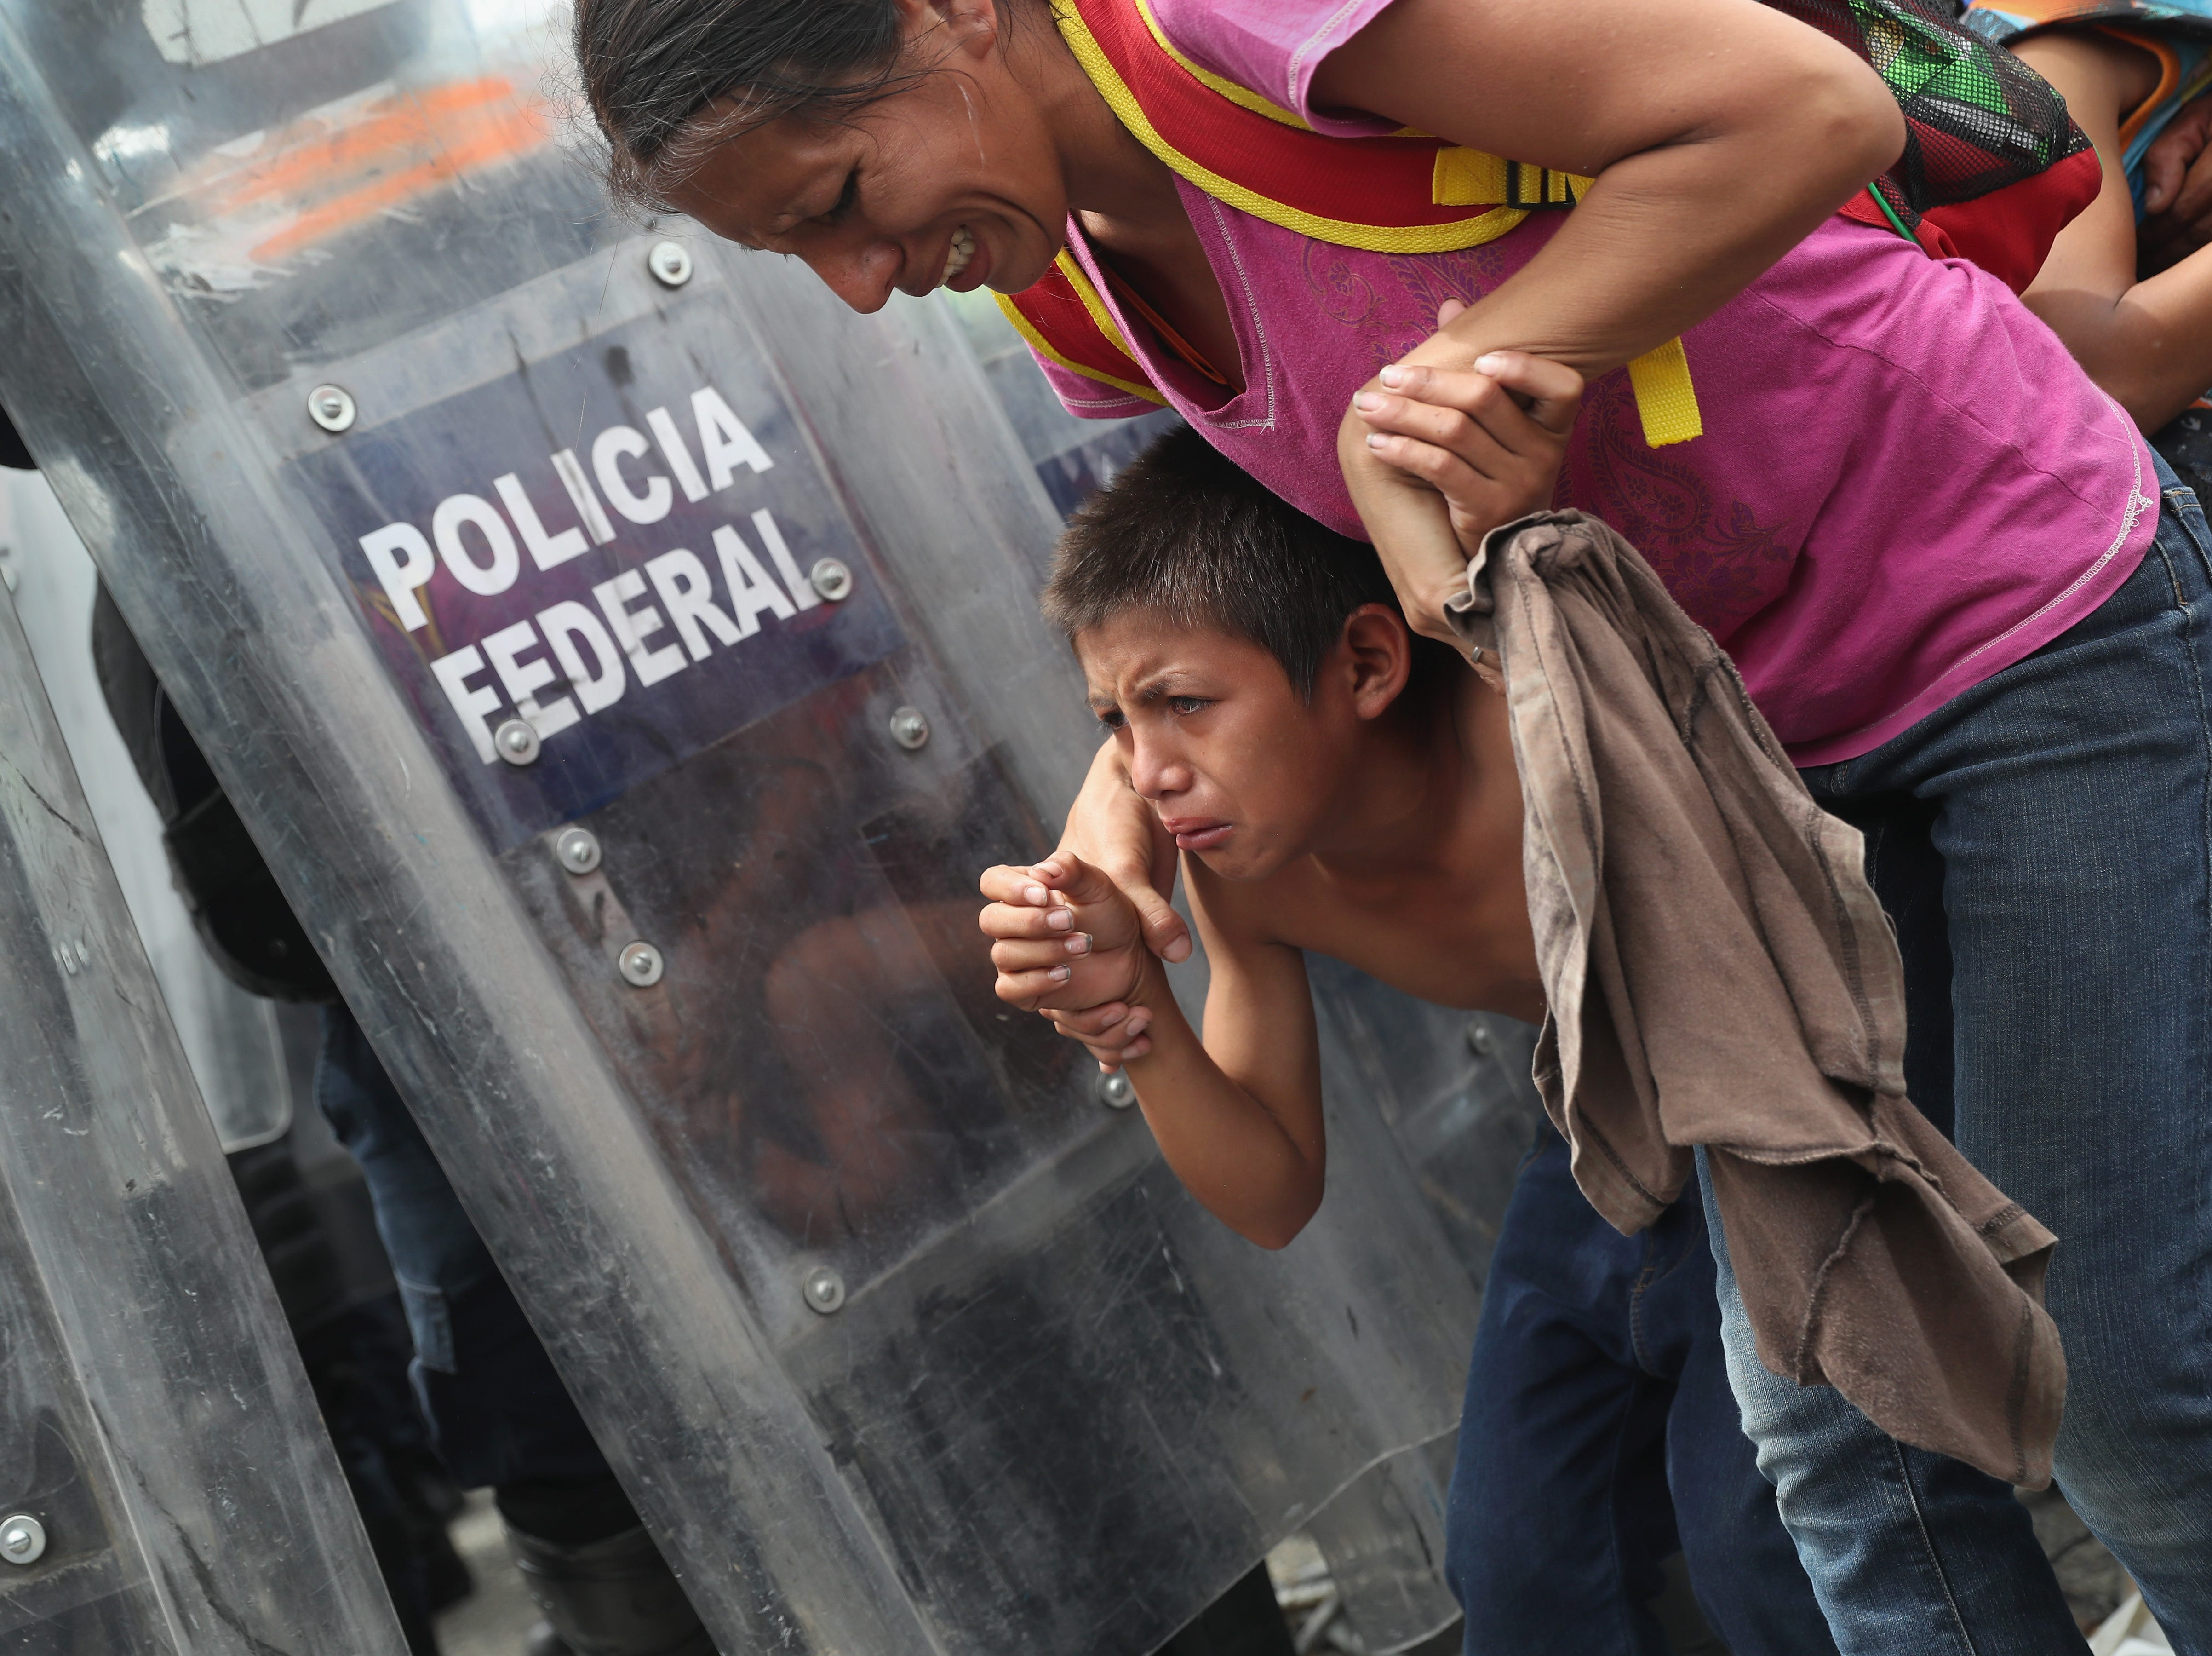 A child takes cover as Mexican riot police clash with the migrant caravan on the border of Mexico and Guatemala on October 19, 2018, in Ciudad Tecun Uman, Guatemala. The caravan opened the gate into Mexico but was pushed back by Mexican riot police. Some immigrants threw stones at the police who then fired tear gas into the crowd.